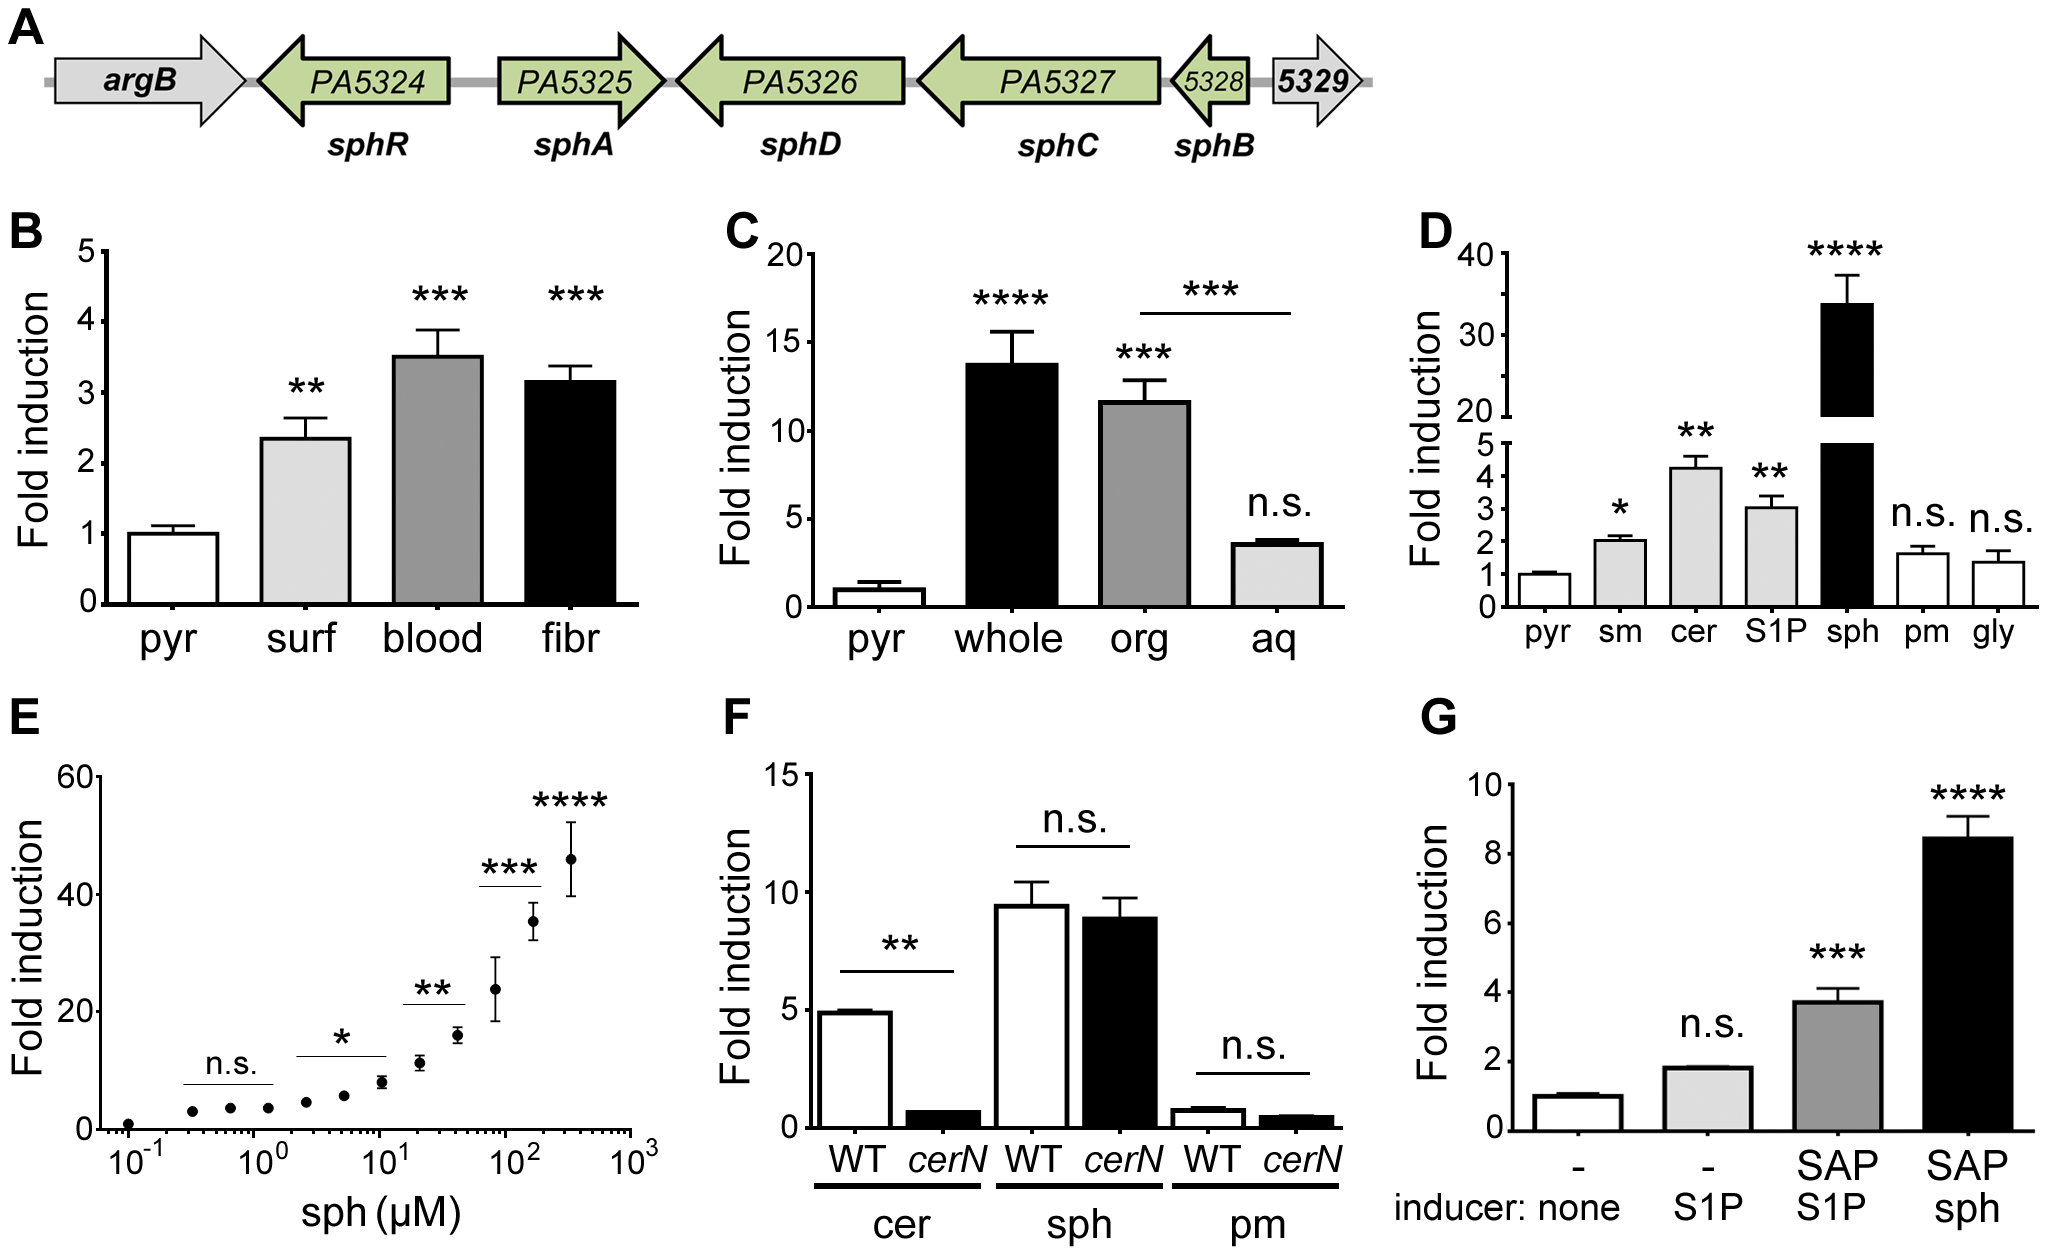 Expression of <i>sphA</i> (<i>PA5325</i>) is induced by sphingosine.